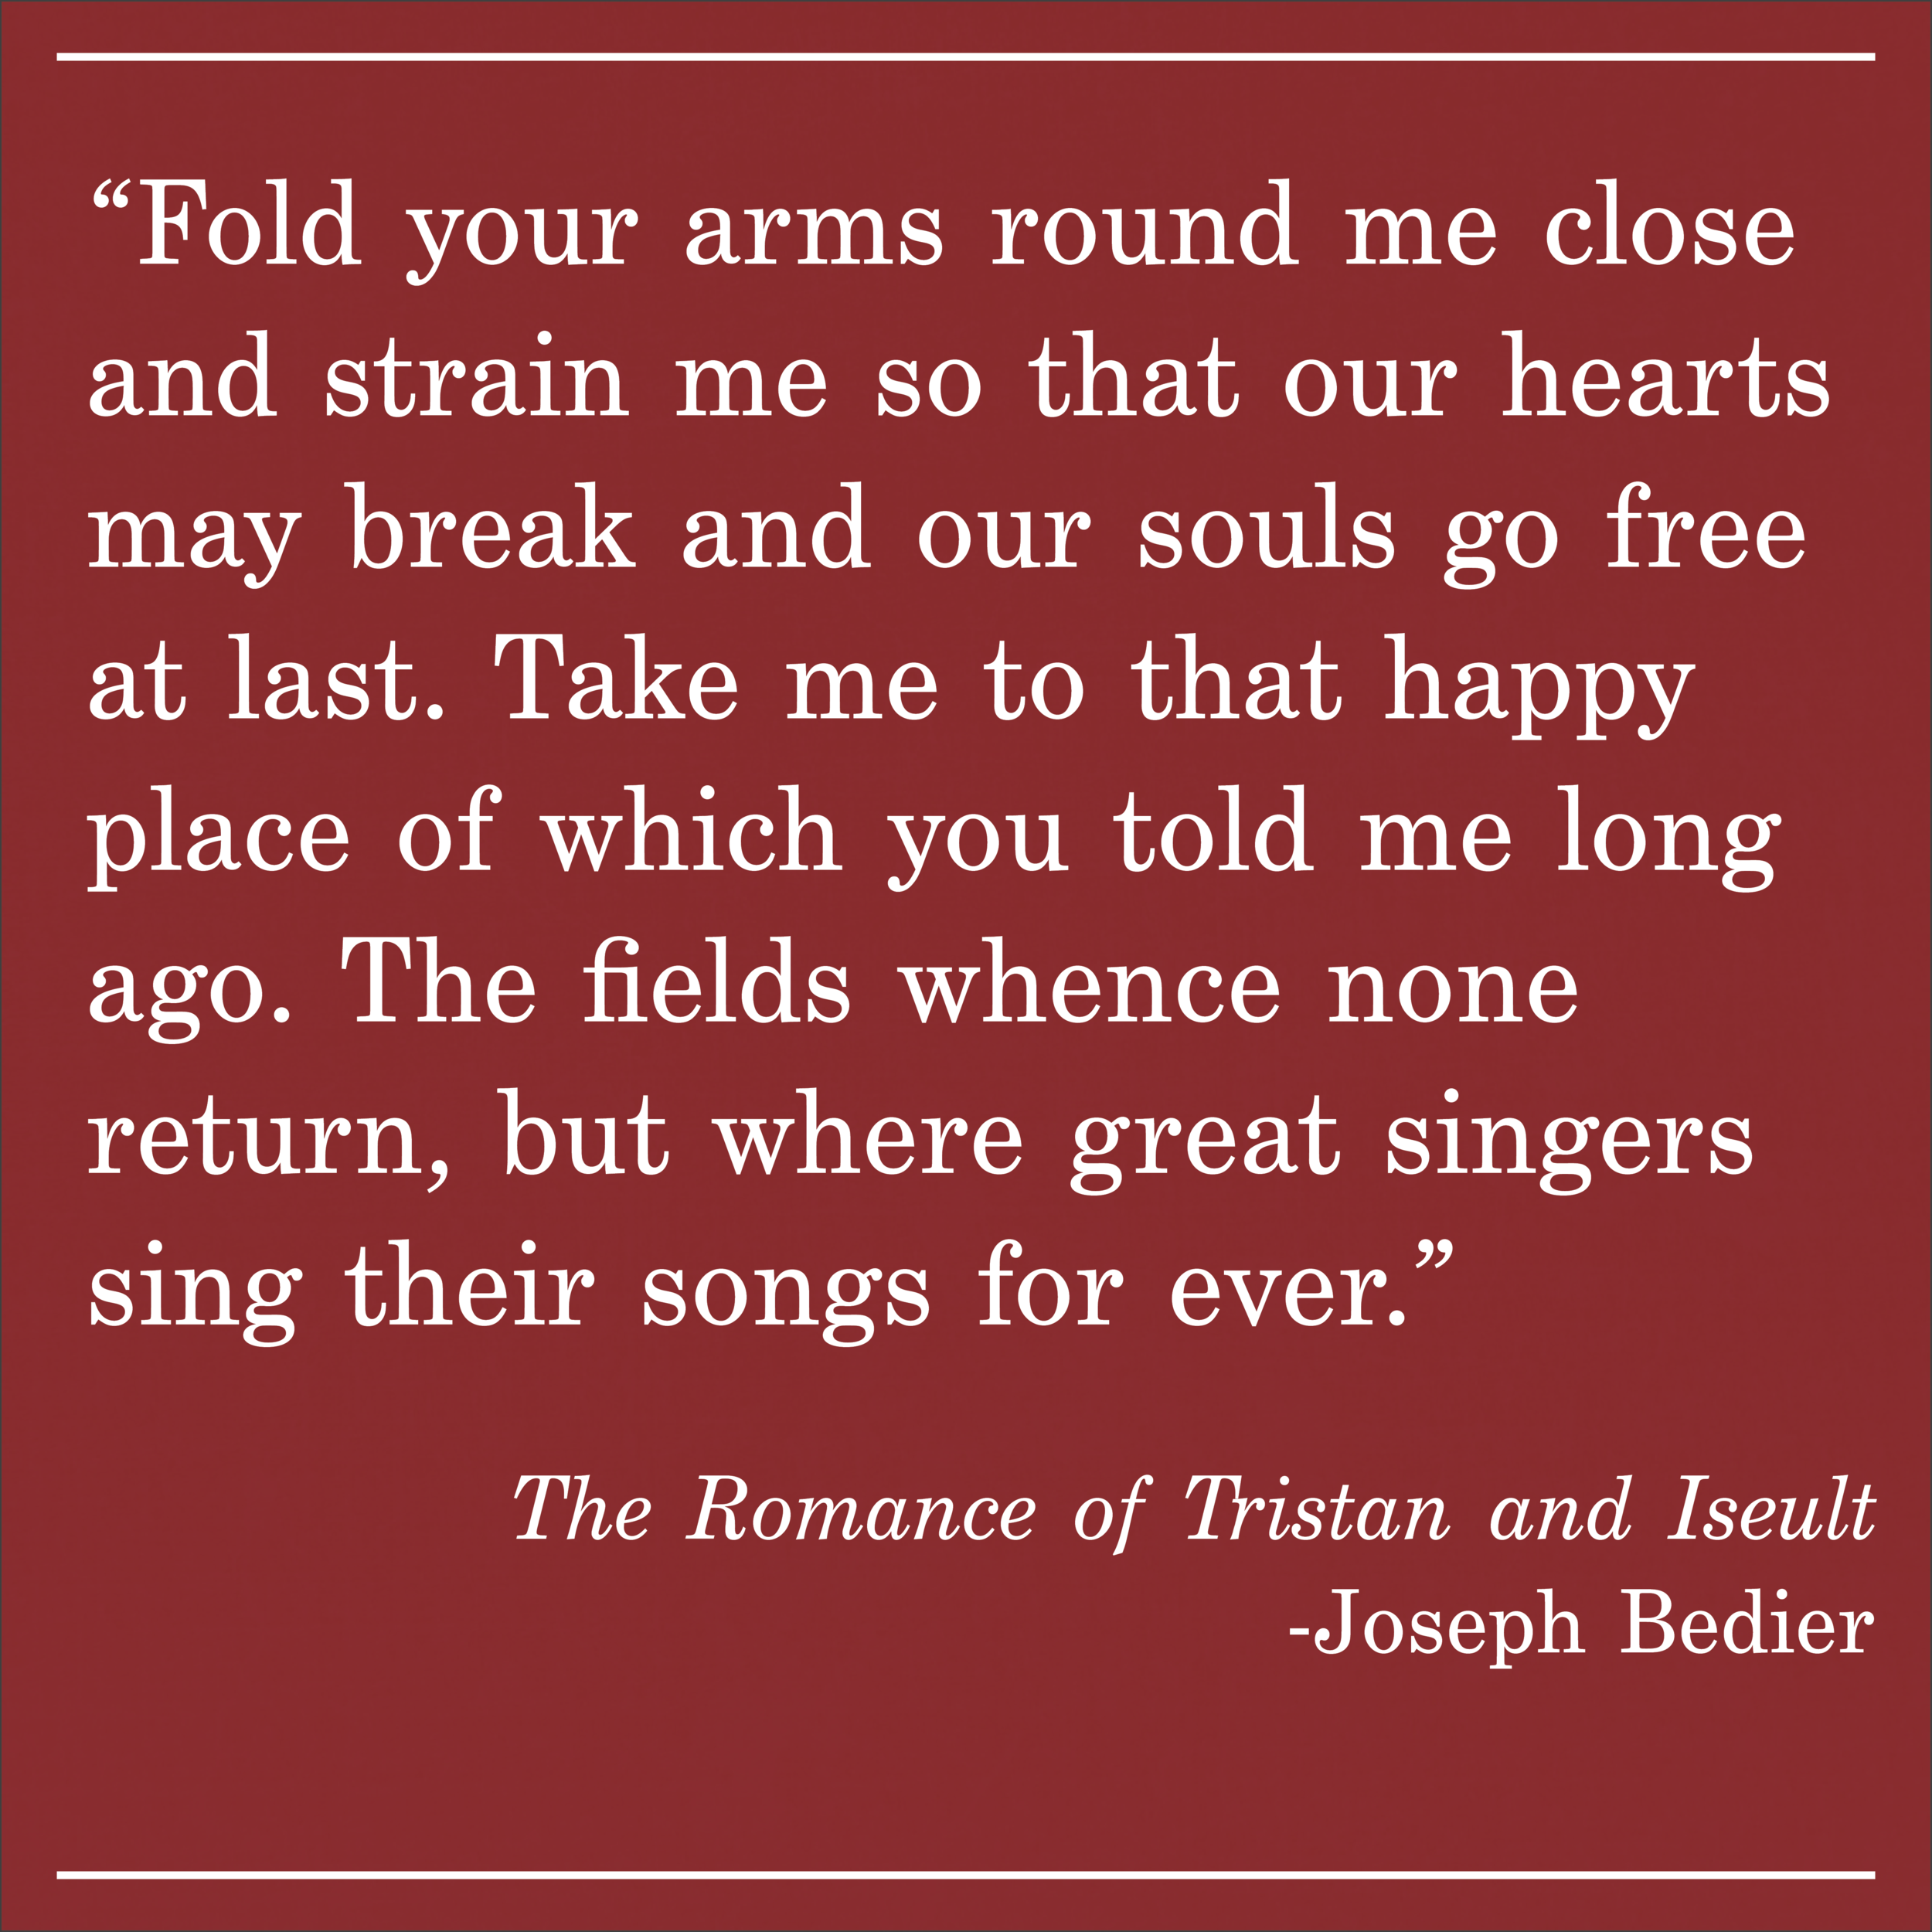 Daily Quote The Romance of Tristan and Iseult by Joseph Bedier